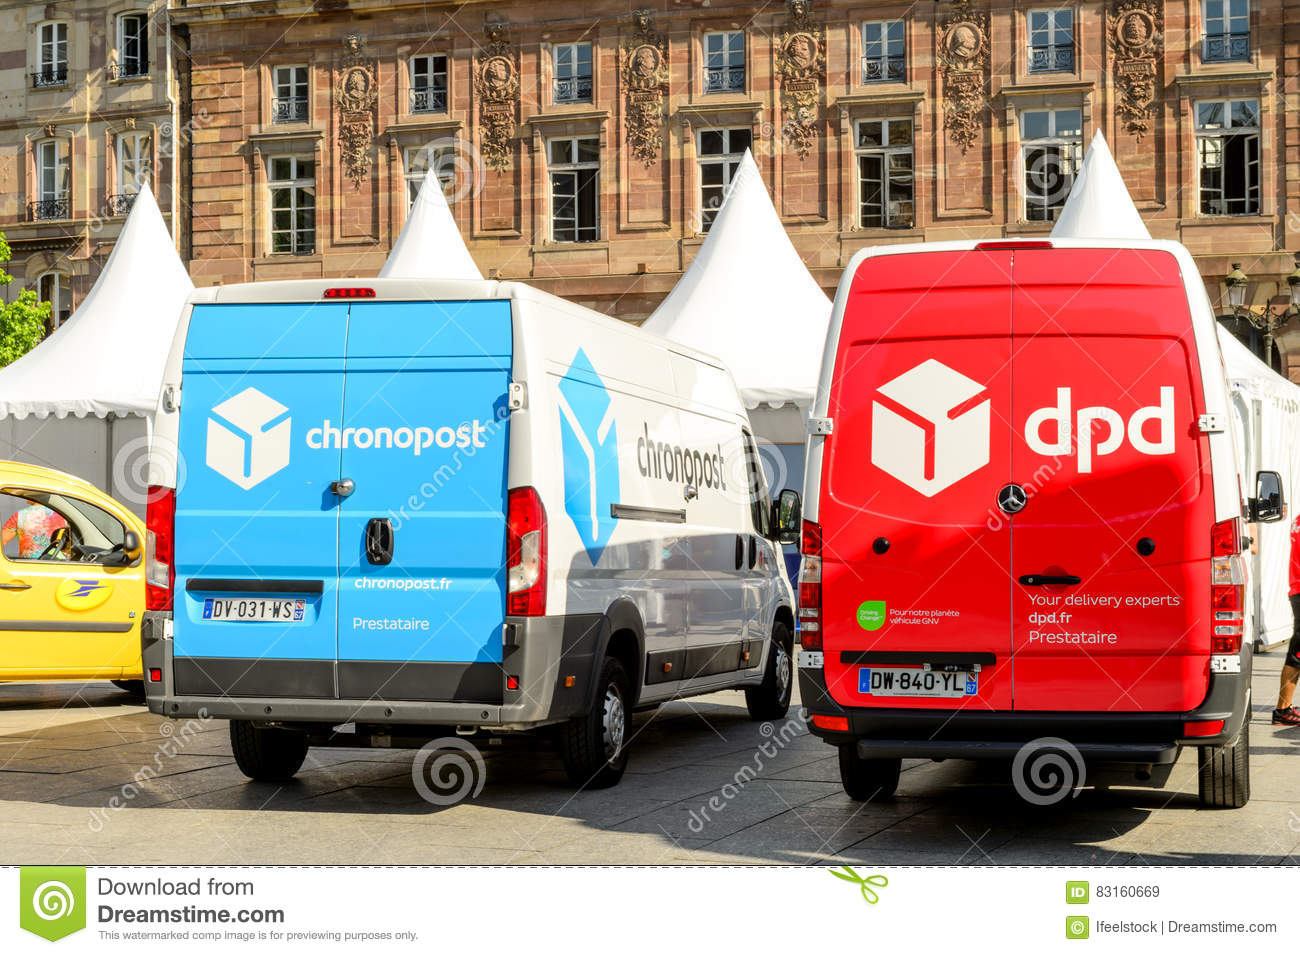 dpd post and chronopost vans in central square editorial. Black Bedroom Furniture Sets. Home Design Ideas